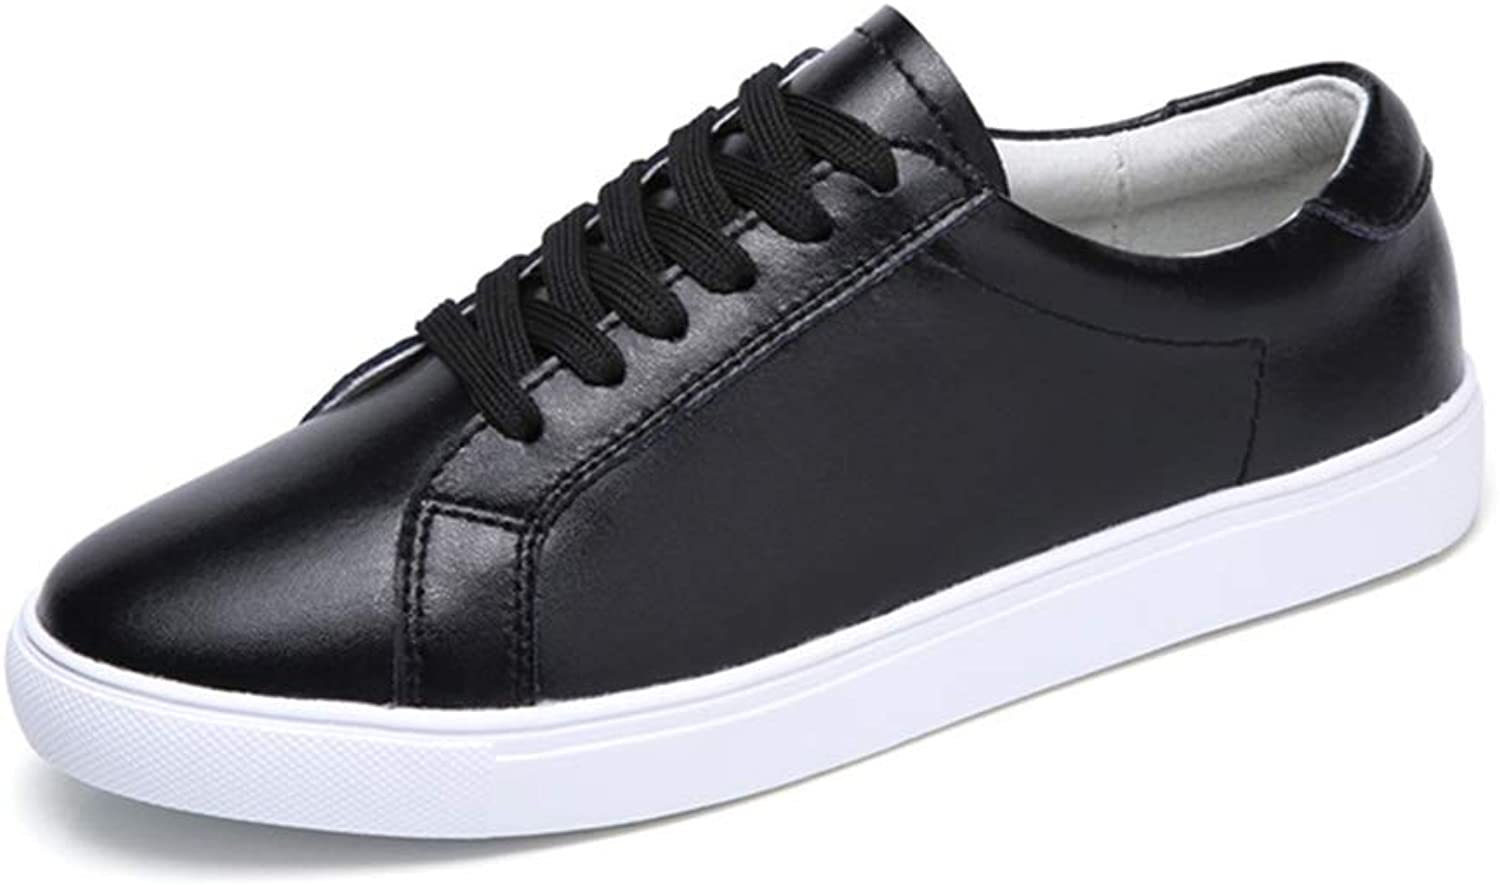 FUMAK Genuine Leather Women's Flat shoes Women Soft Breathable Sneakers Black White Lace Up